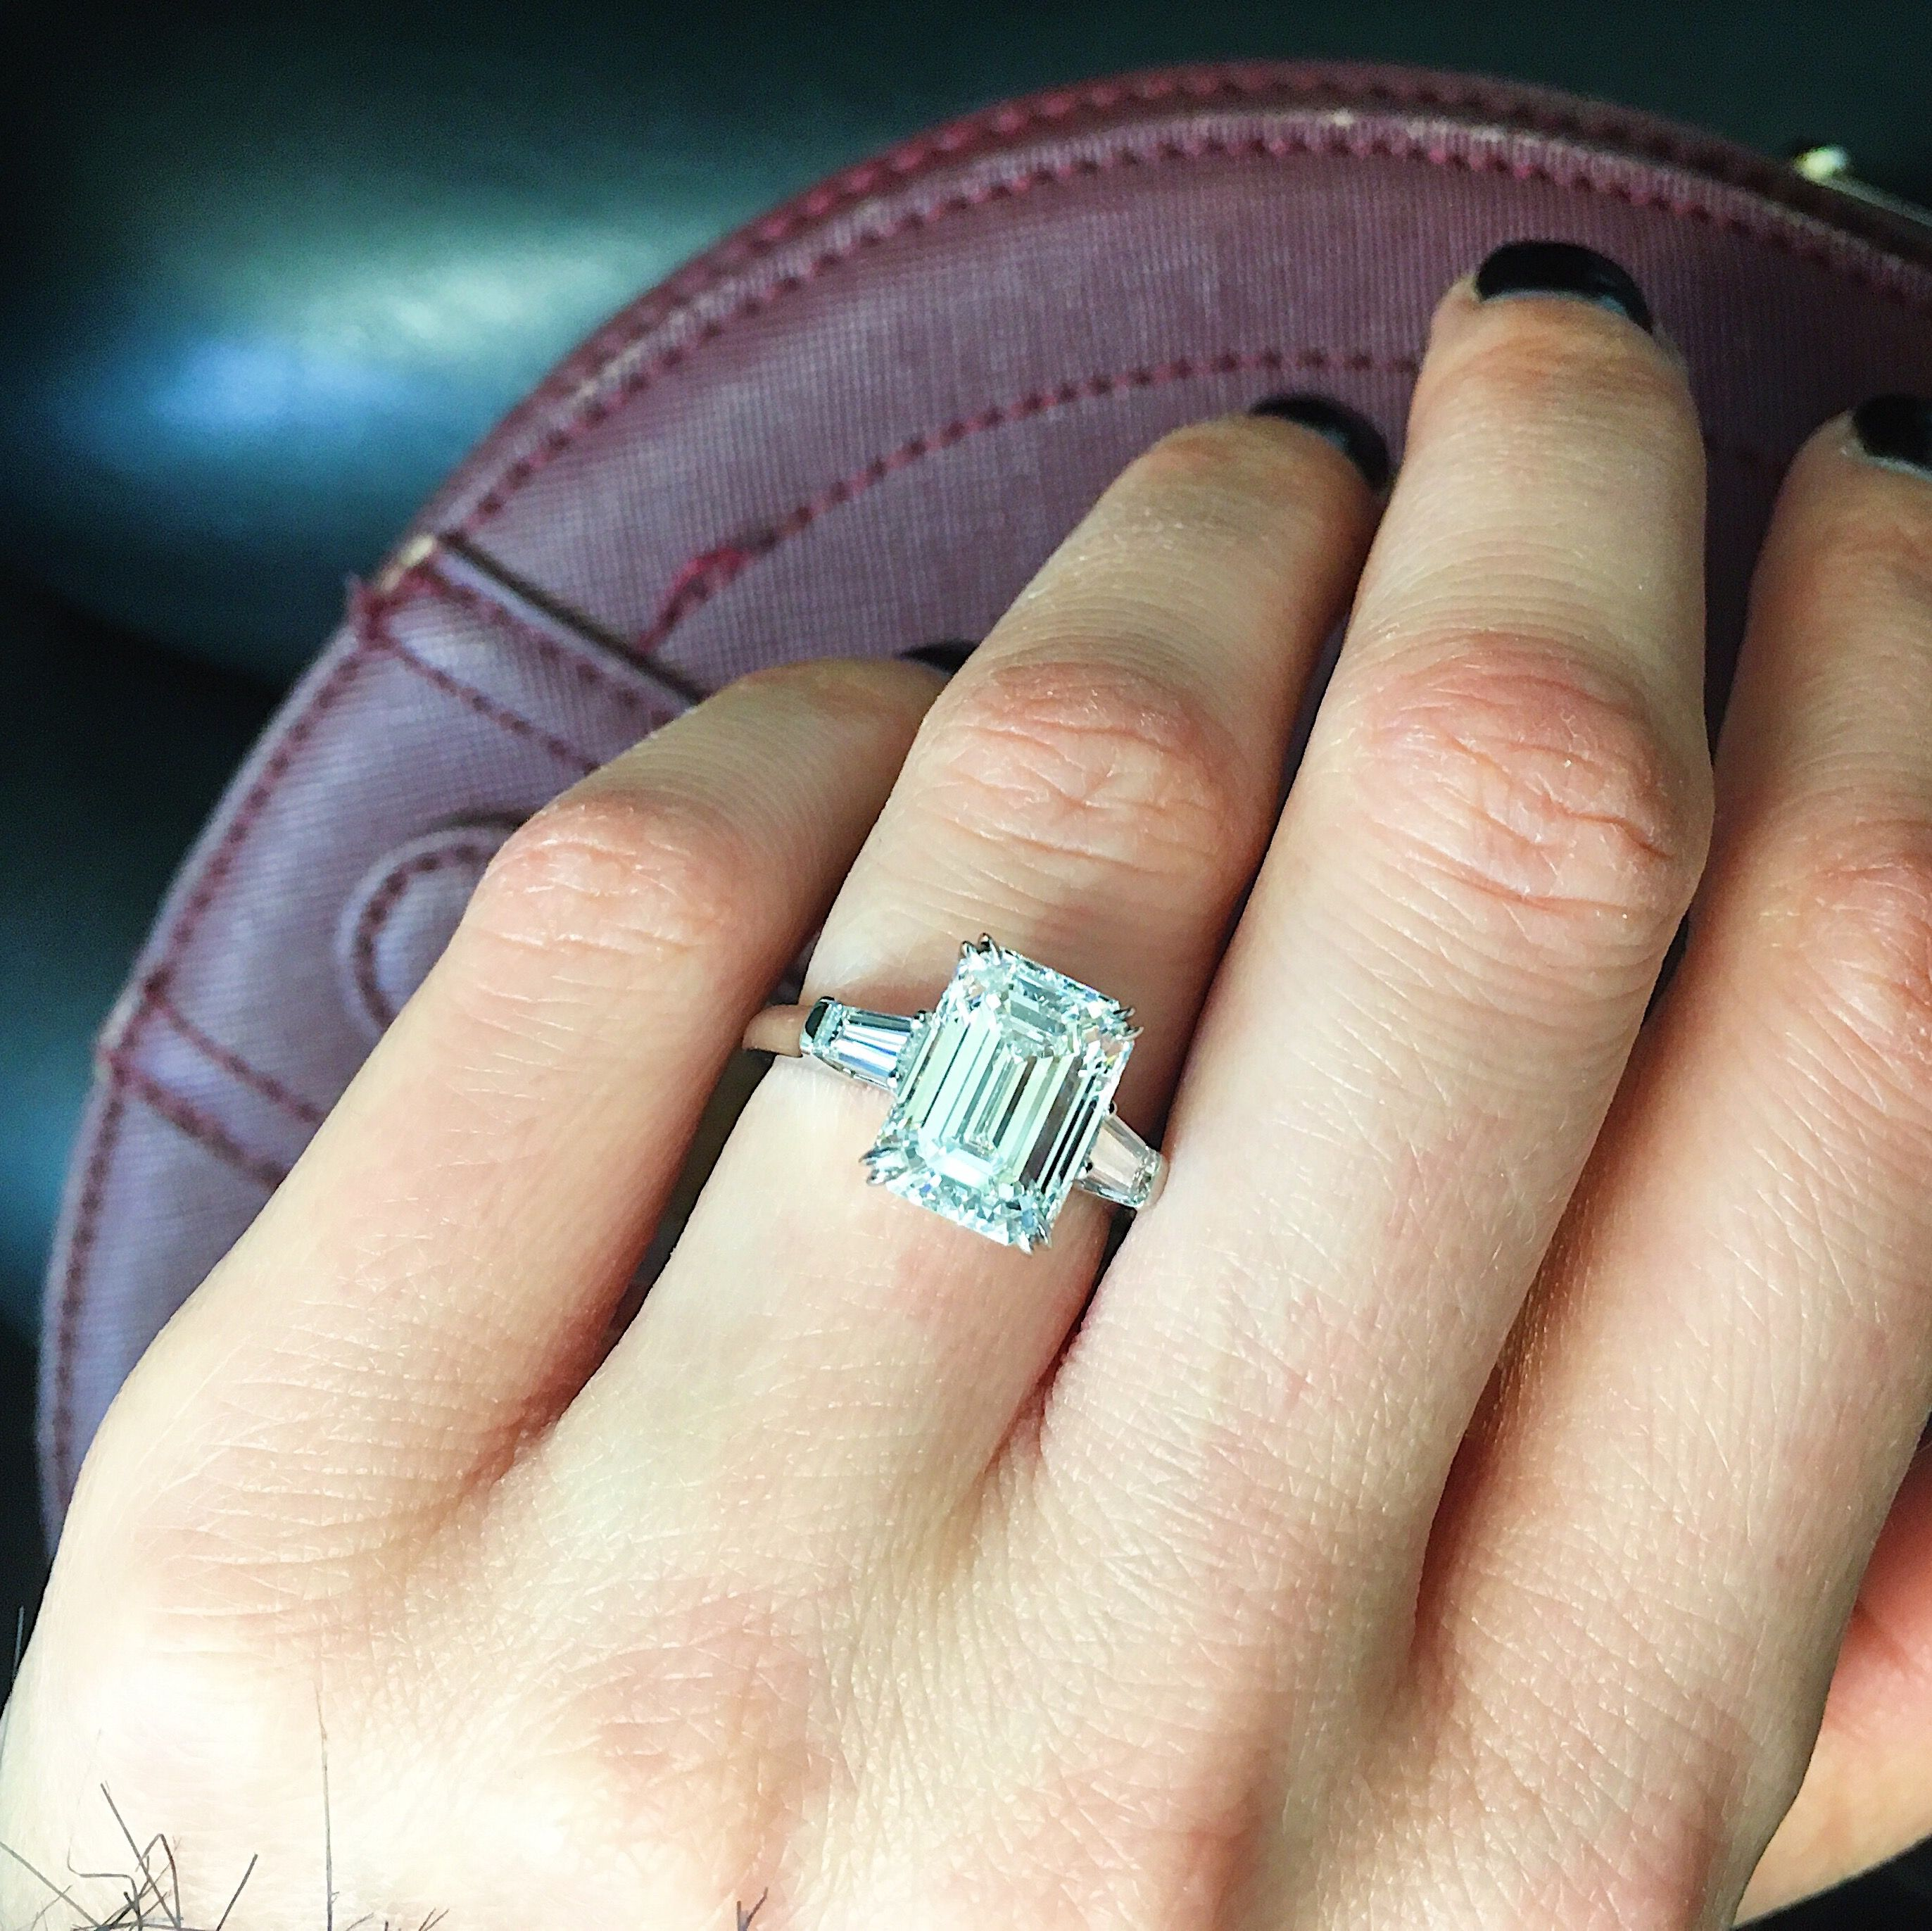 My New Little Friend Is This Amal Clooney Style Emerald Cut Diamond Engagement Ring Well Granted S A 6 7ct But Let Not Complaint Here